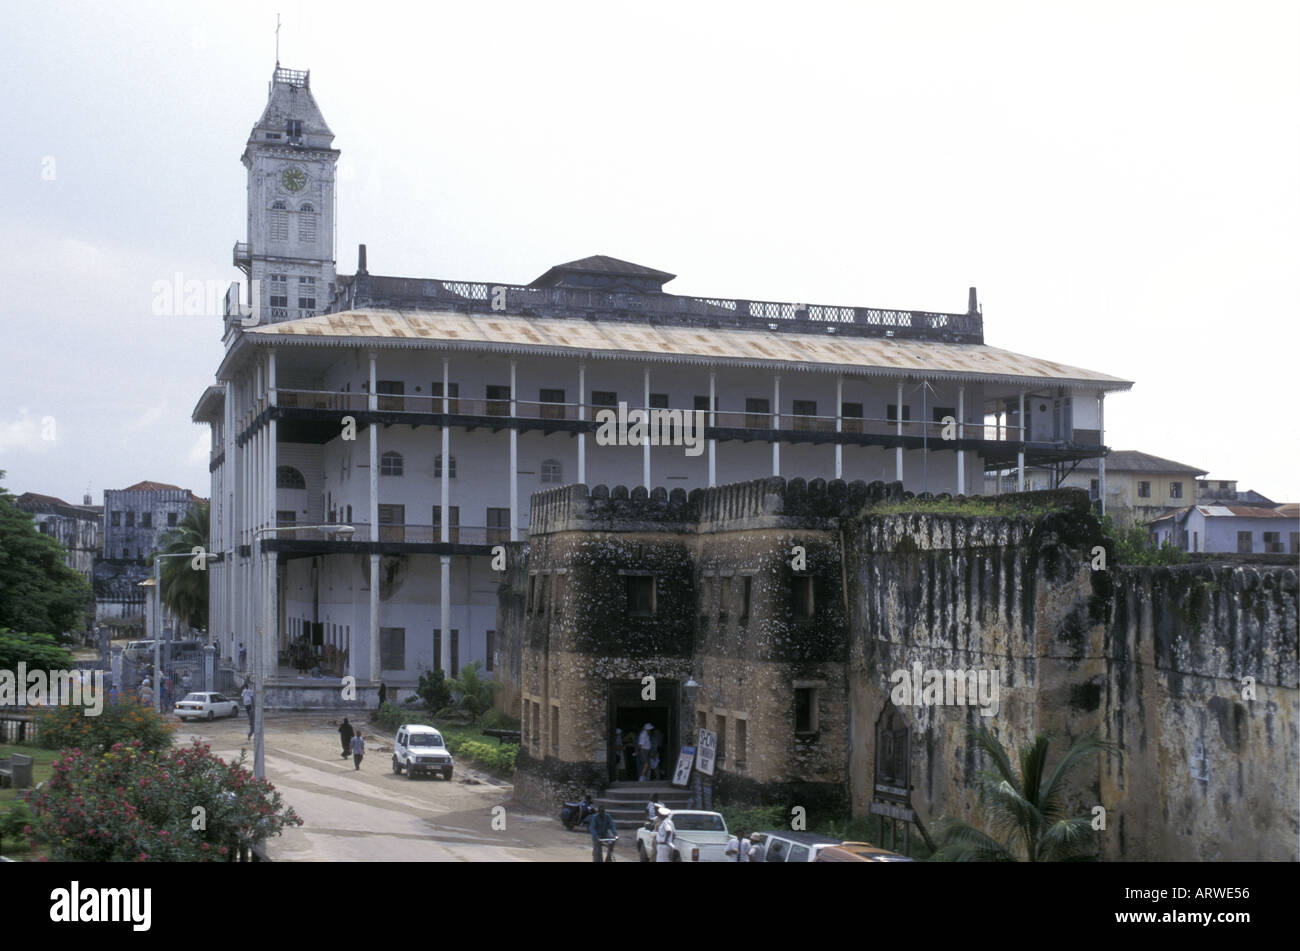 The House of Wonders or Beit el Ajaib and the Old Arab Fort in the stone town Zanzibar Tanzania East Africa - Stock Image